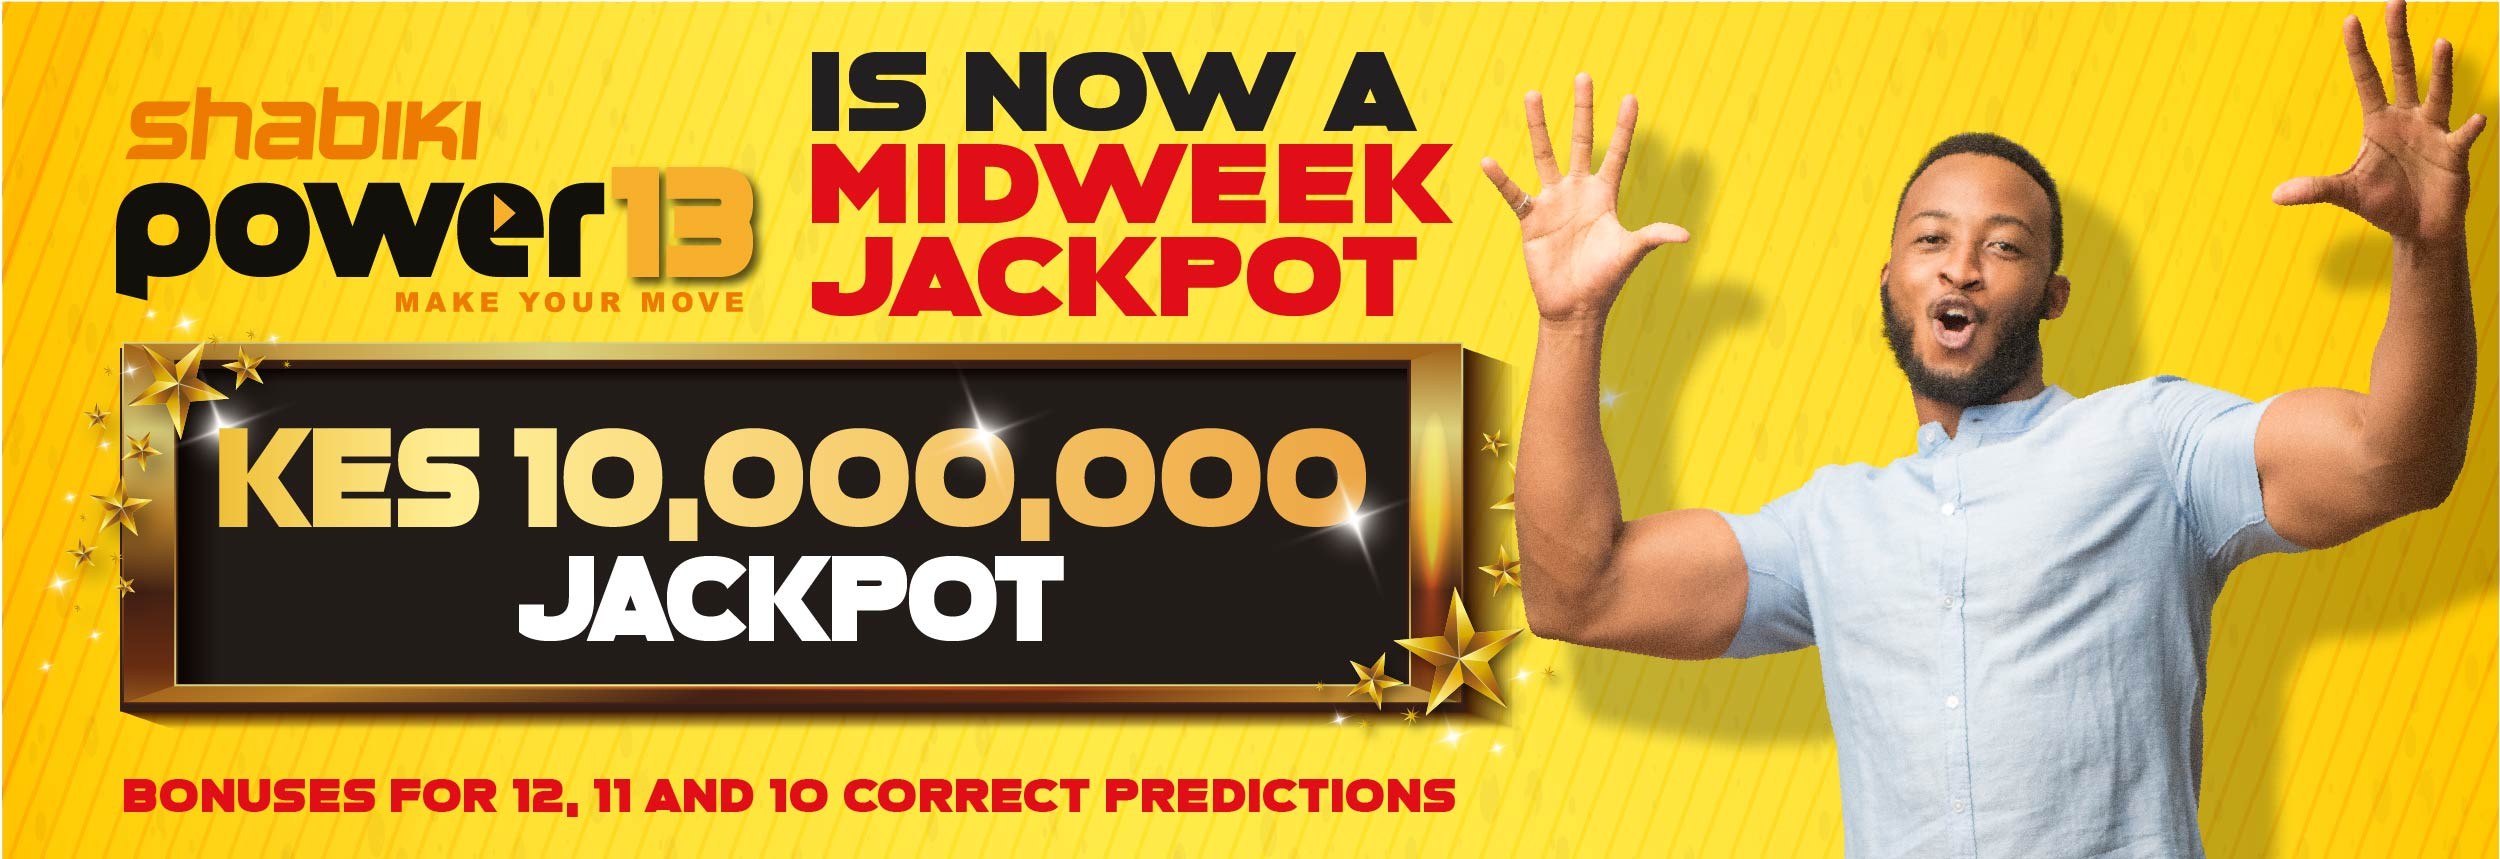 Shabiki Power 13 Midweek Jackpot Games Analysis Tips October 19 2019 Shabiki Power 13 Jackpot 13 Games October 19 2019 Shabiki Power13 Matches Prediction